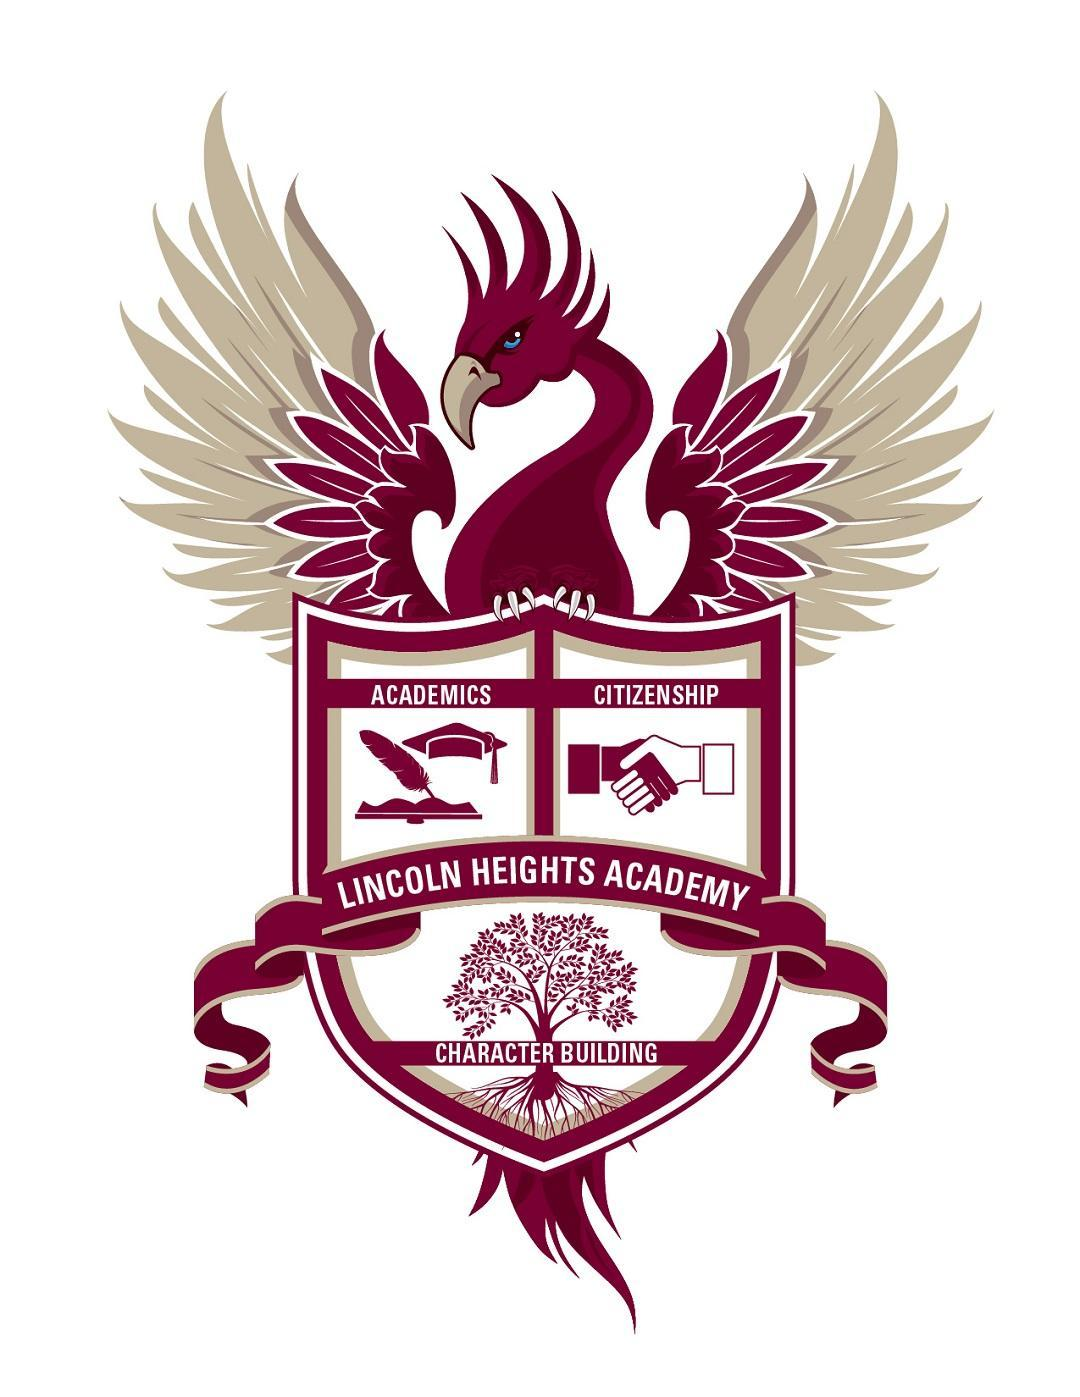 Lincoln Heights Academy crest and logo